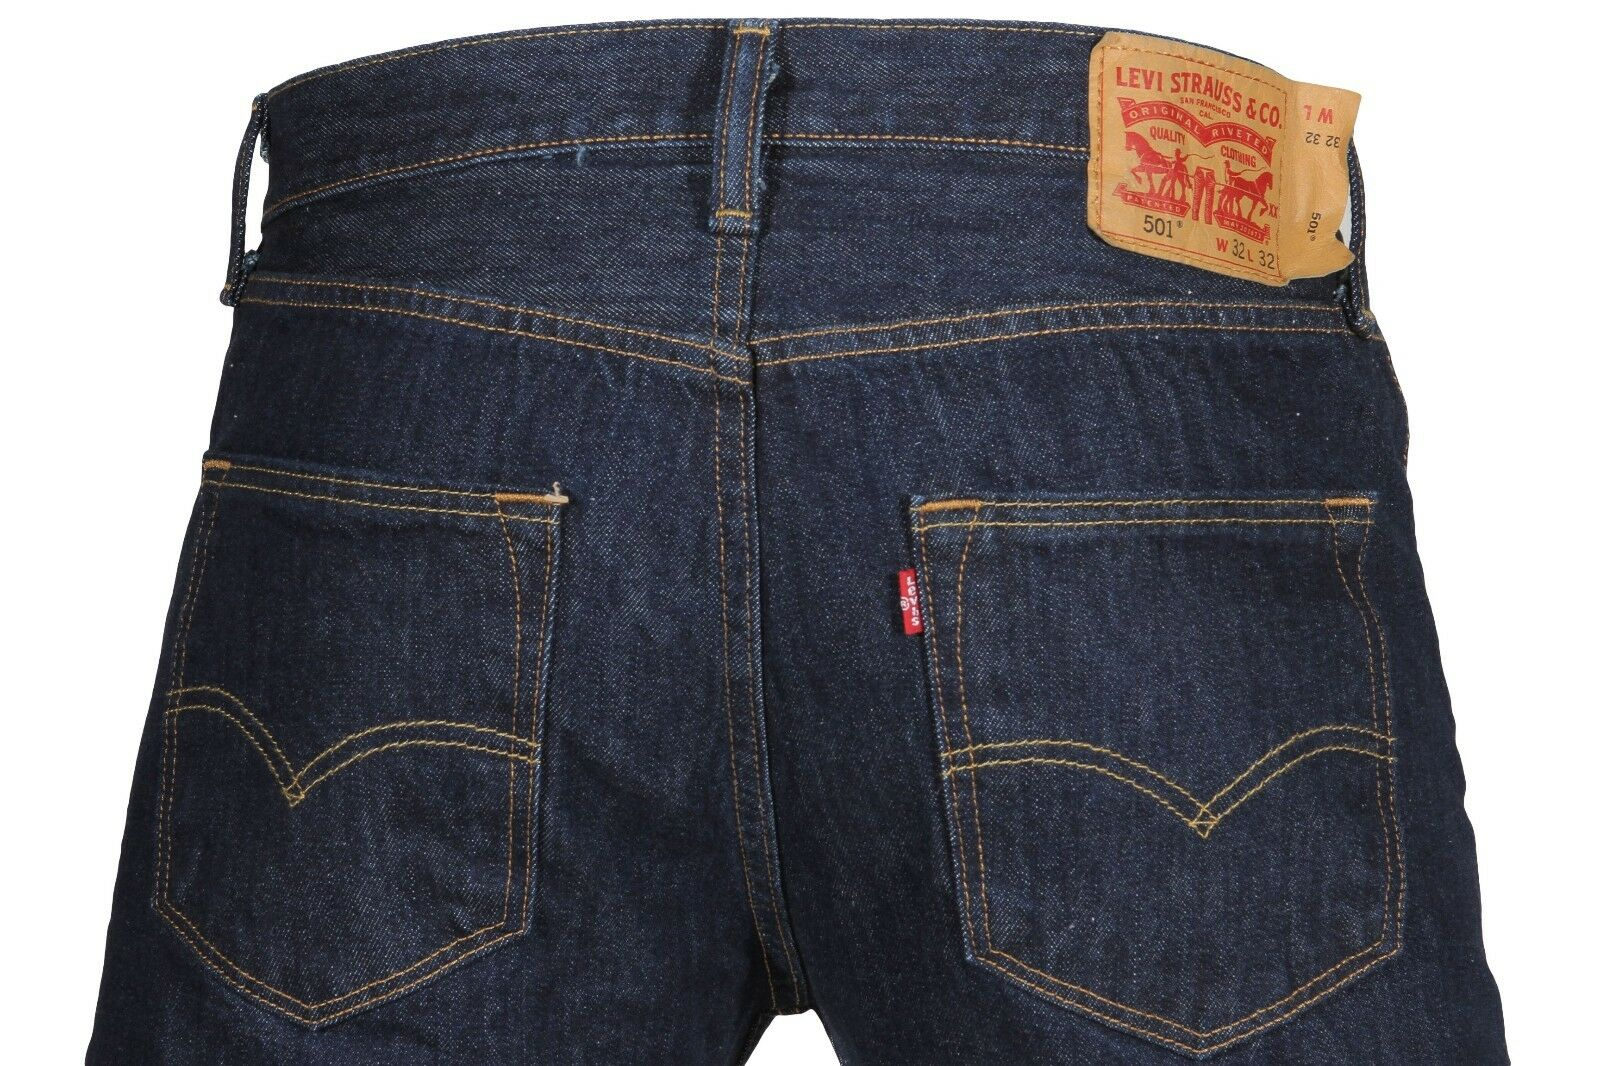 Levis 501 Button Fly Jeans Many Sizes Colors New W/ Tags Mens Authentic Original